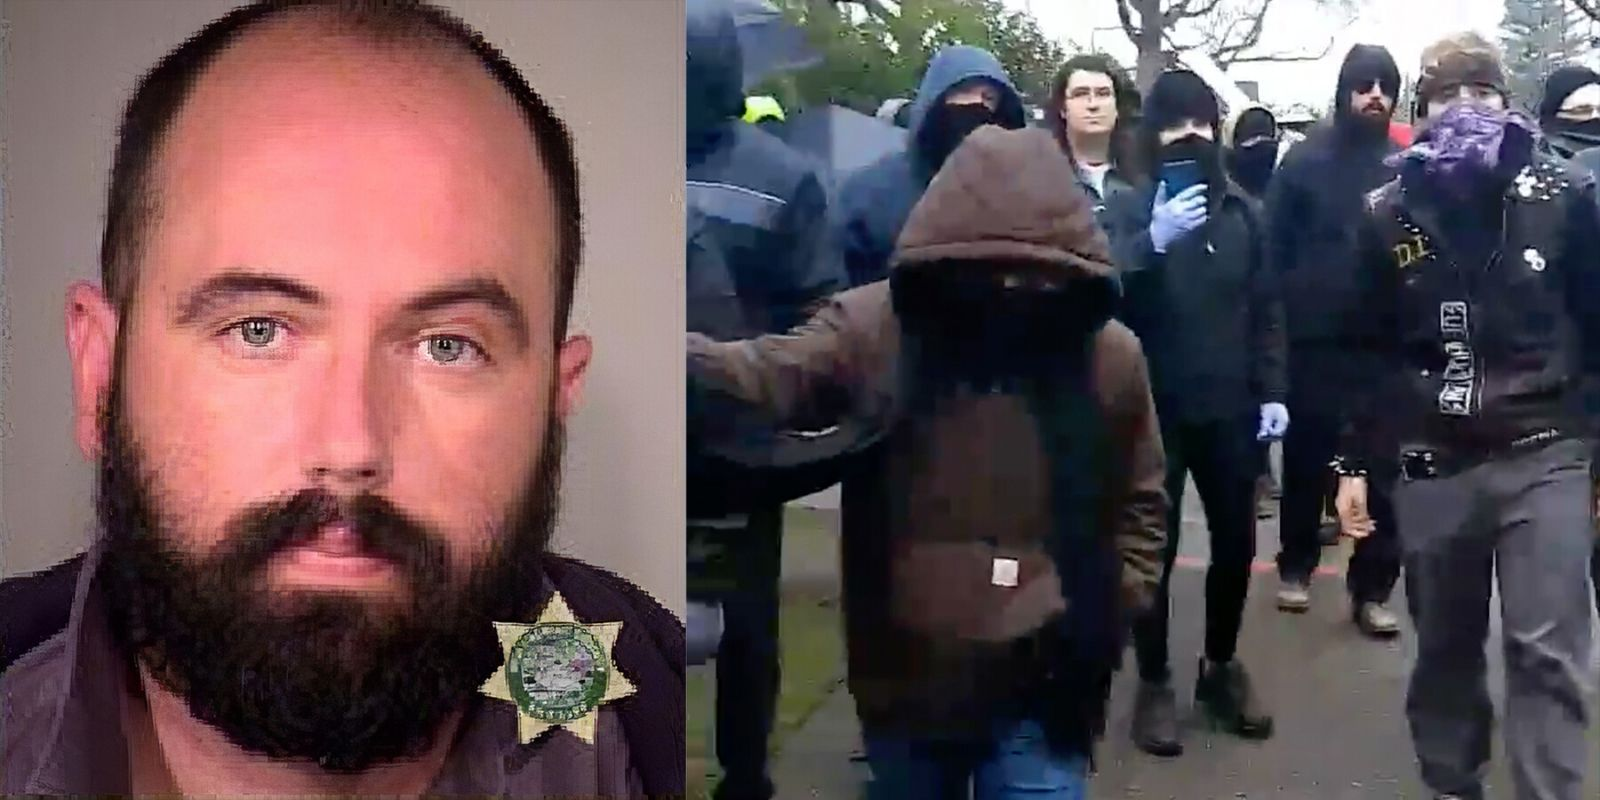 Antifa suspect identified in Washington state attack